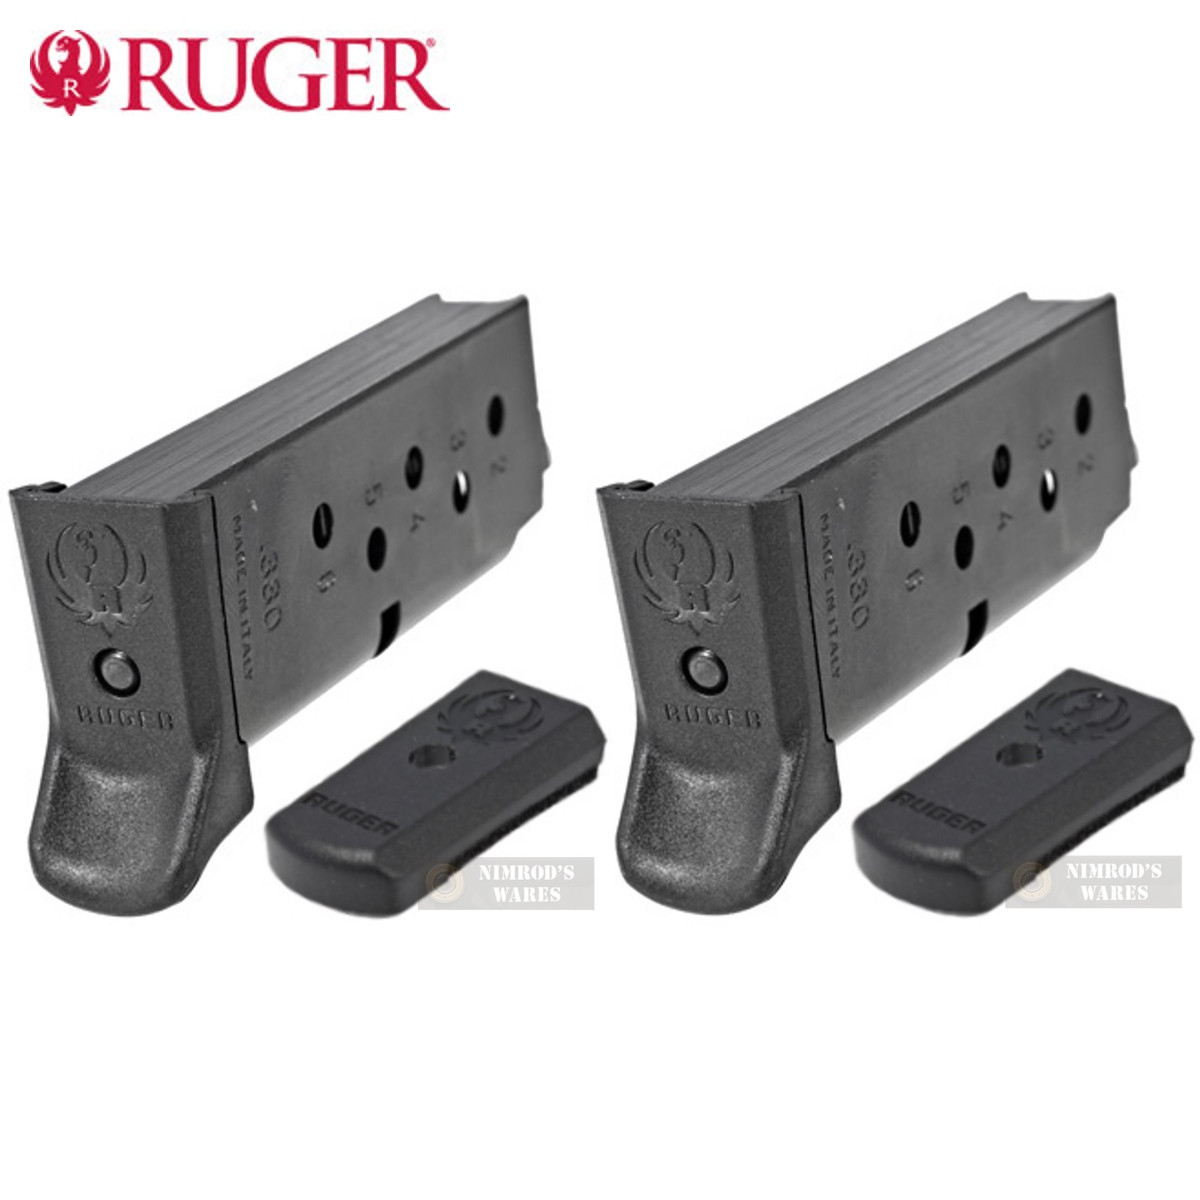 RUGER LCP II  380 ACP 6 Round MAGAZINE 2-PACK 90621